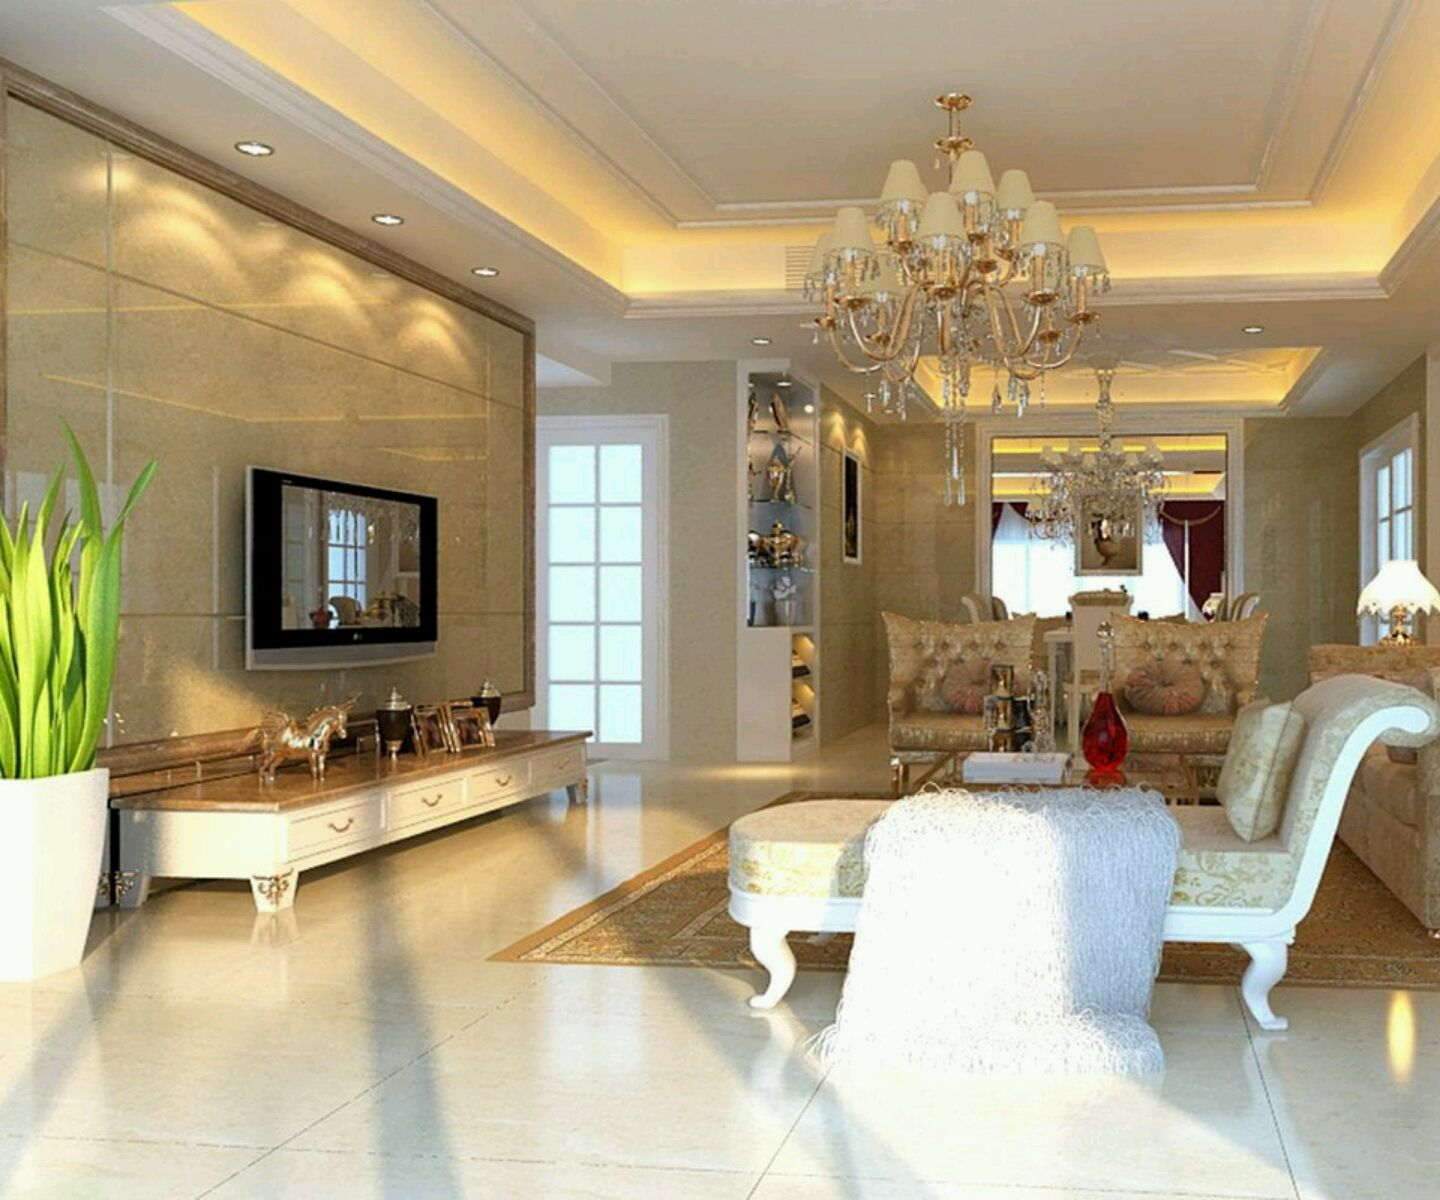 Interior home decorations luxury interior decorating ideas - Luxury homes interior decoration living room designs ideas